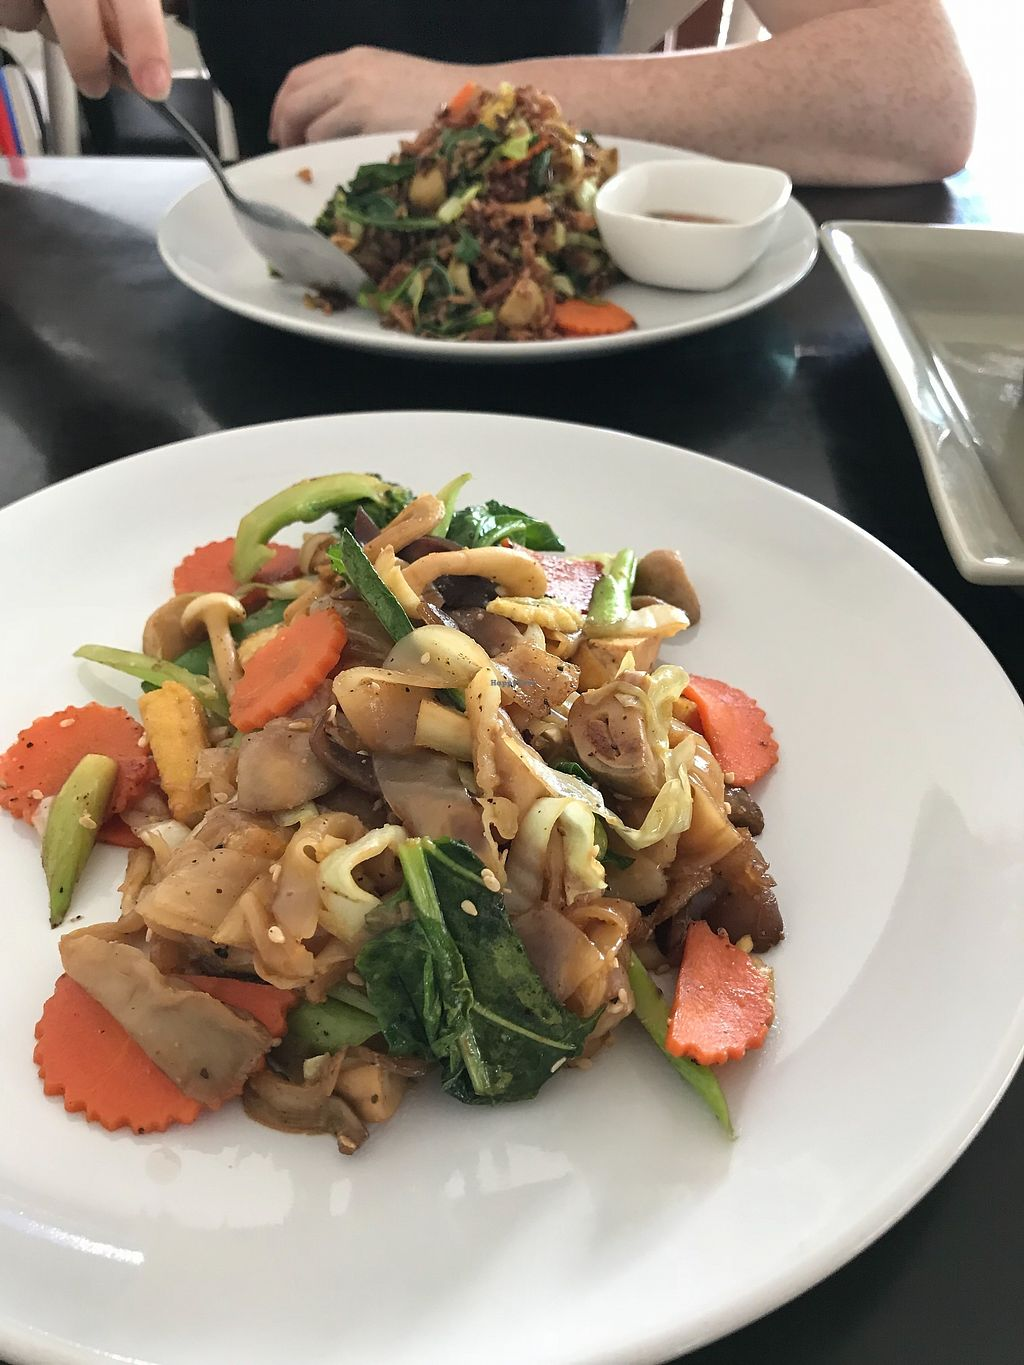 """Photo of 108 Vegetarian Cuisine  by <a href=""""/members/profile/Hulahoopingvegan"""">Hulahoopingvegan</a> <br/>Noodle dish <br/> November 29, 2017  - <a href='/contact/abuse/image/67962/330327'>Report</a>"""